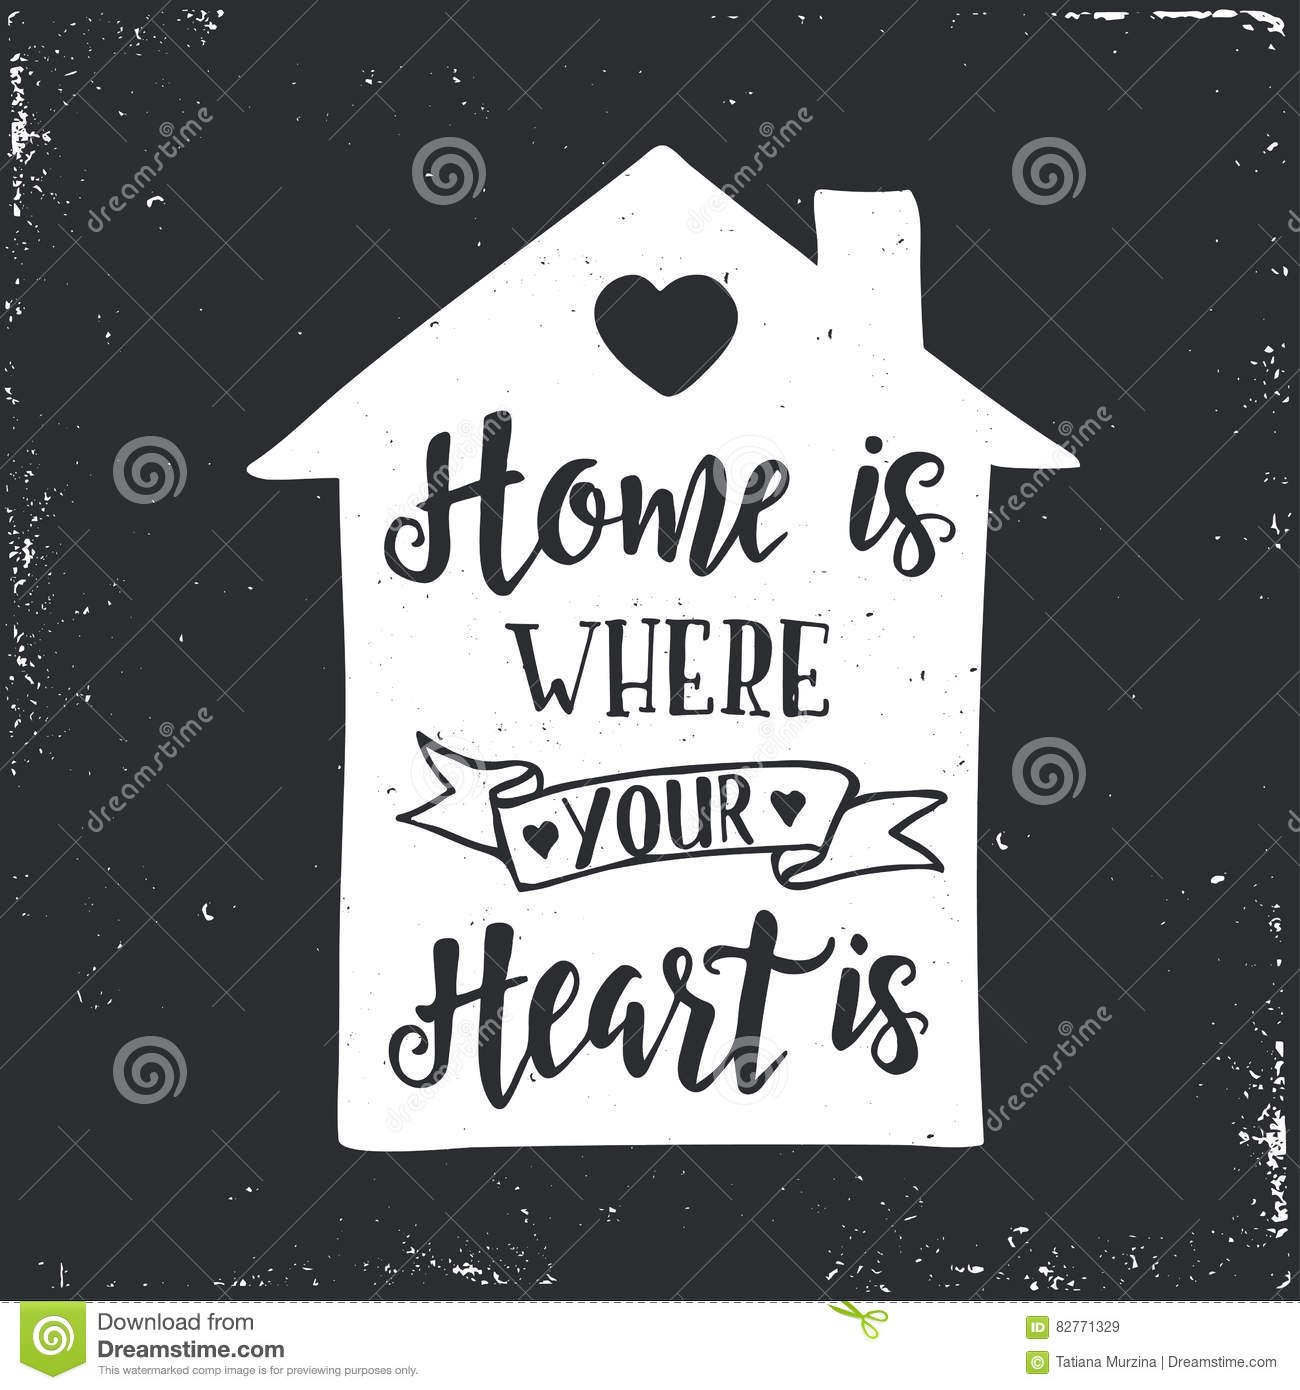 Home is where your heart is. Inspirational vector Hand drawn typography poster.